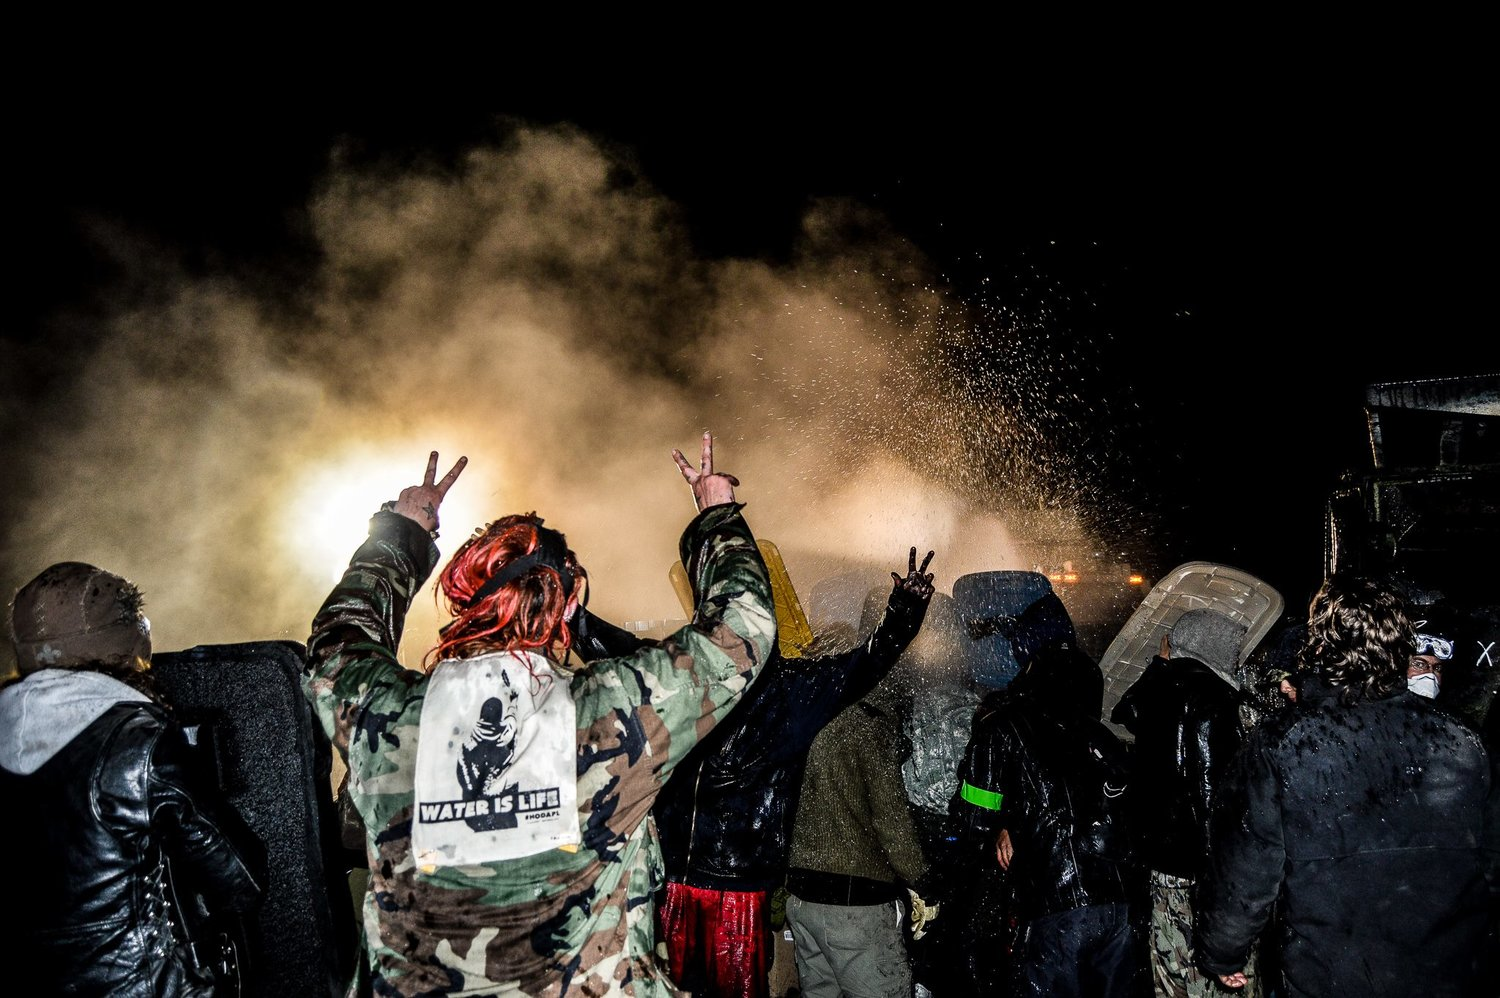 Charmaine White Face: Let the 'Big Spirits' take over at Standing Rock